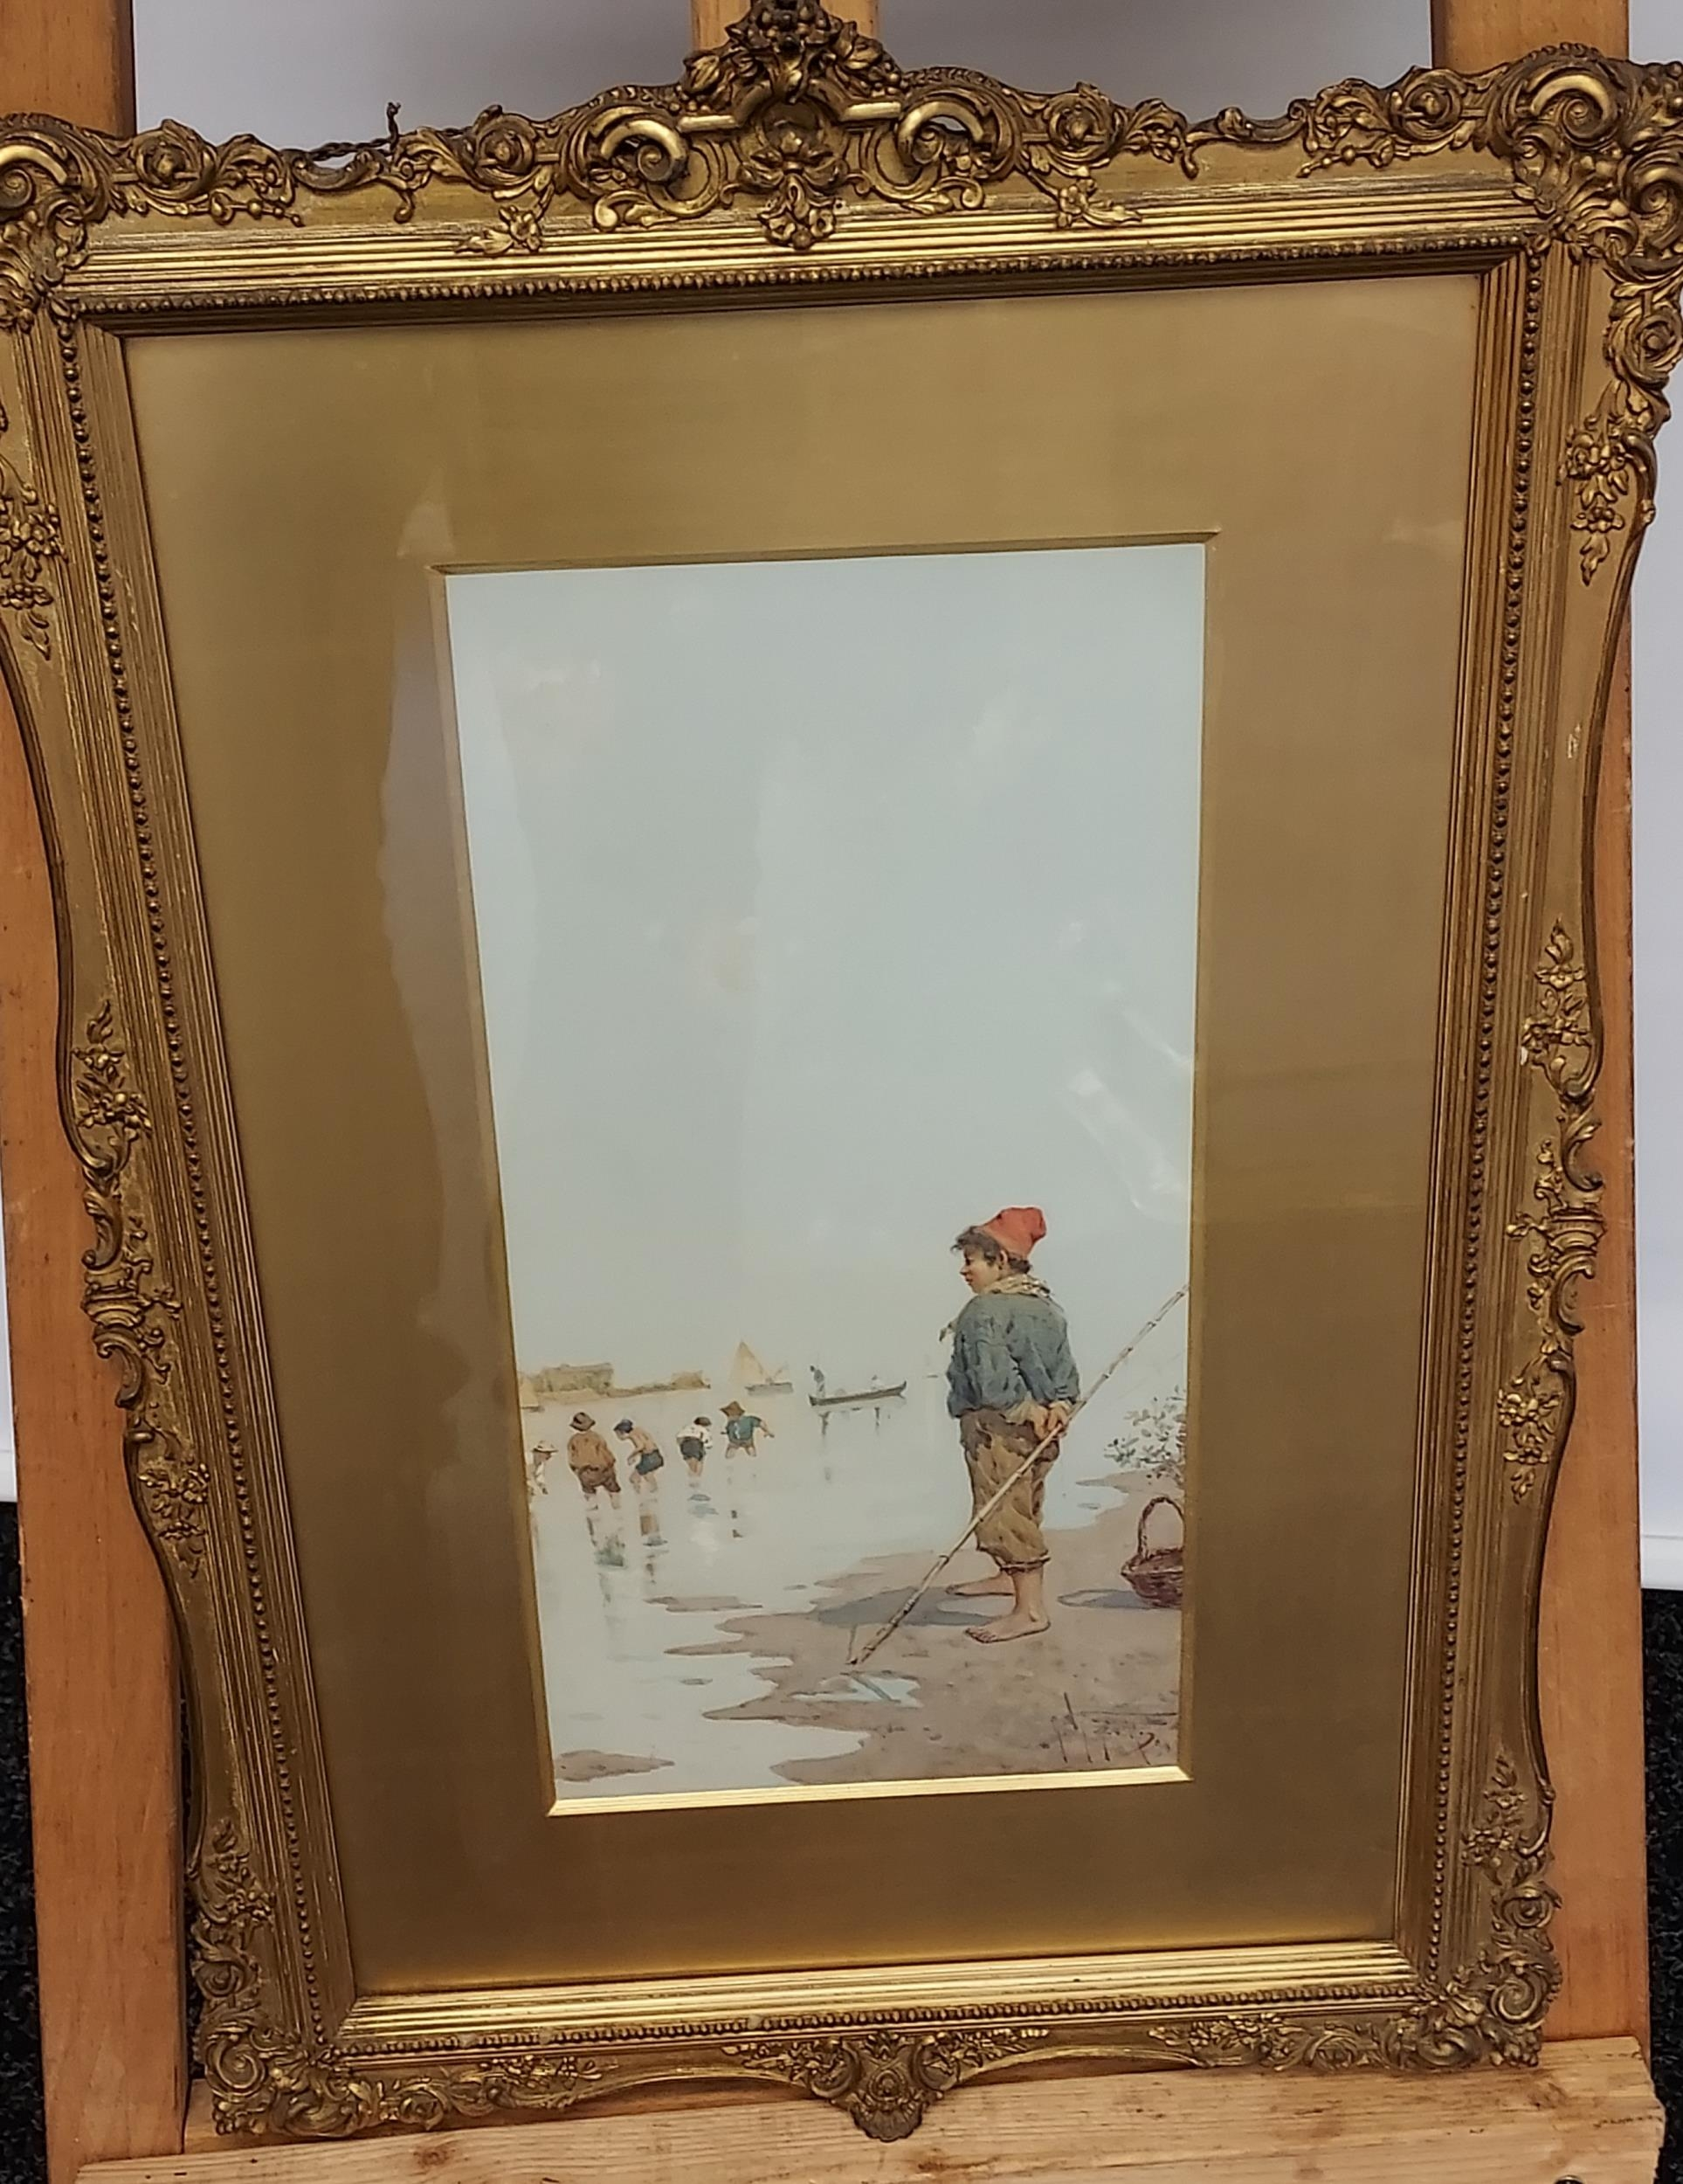 An impressive 19th century watercolour depicting gentleman fisher by the river side. Signed by the